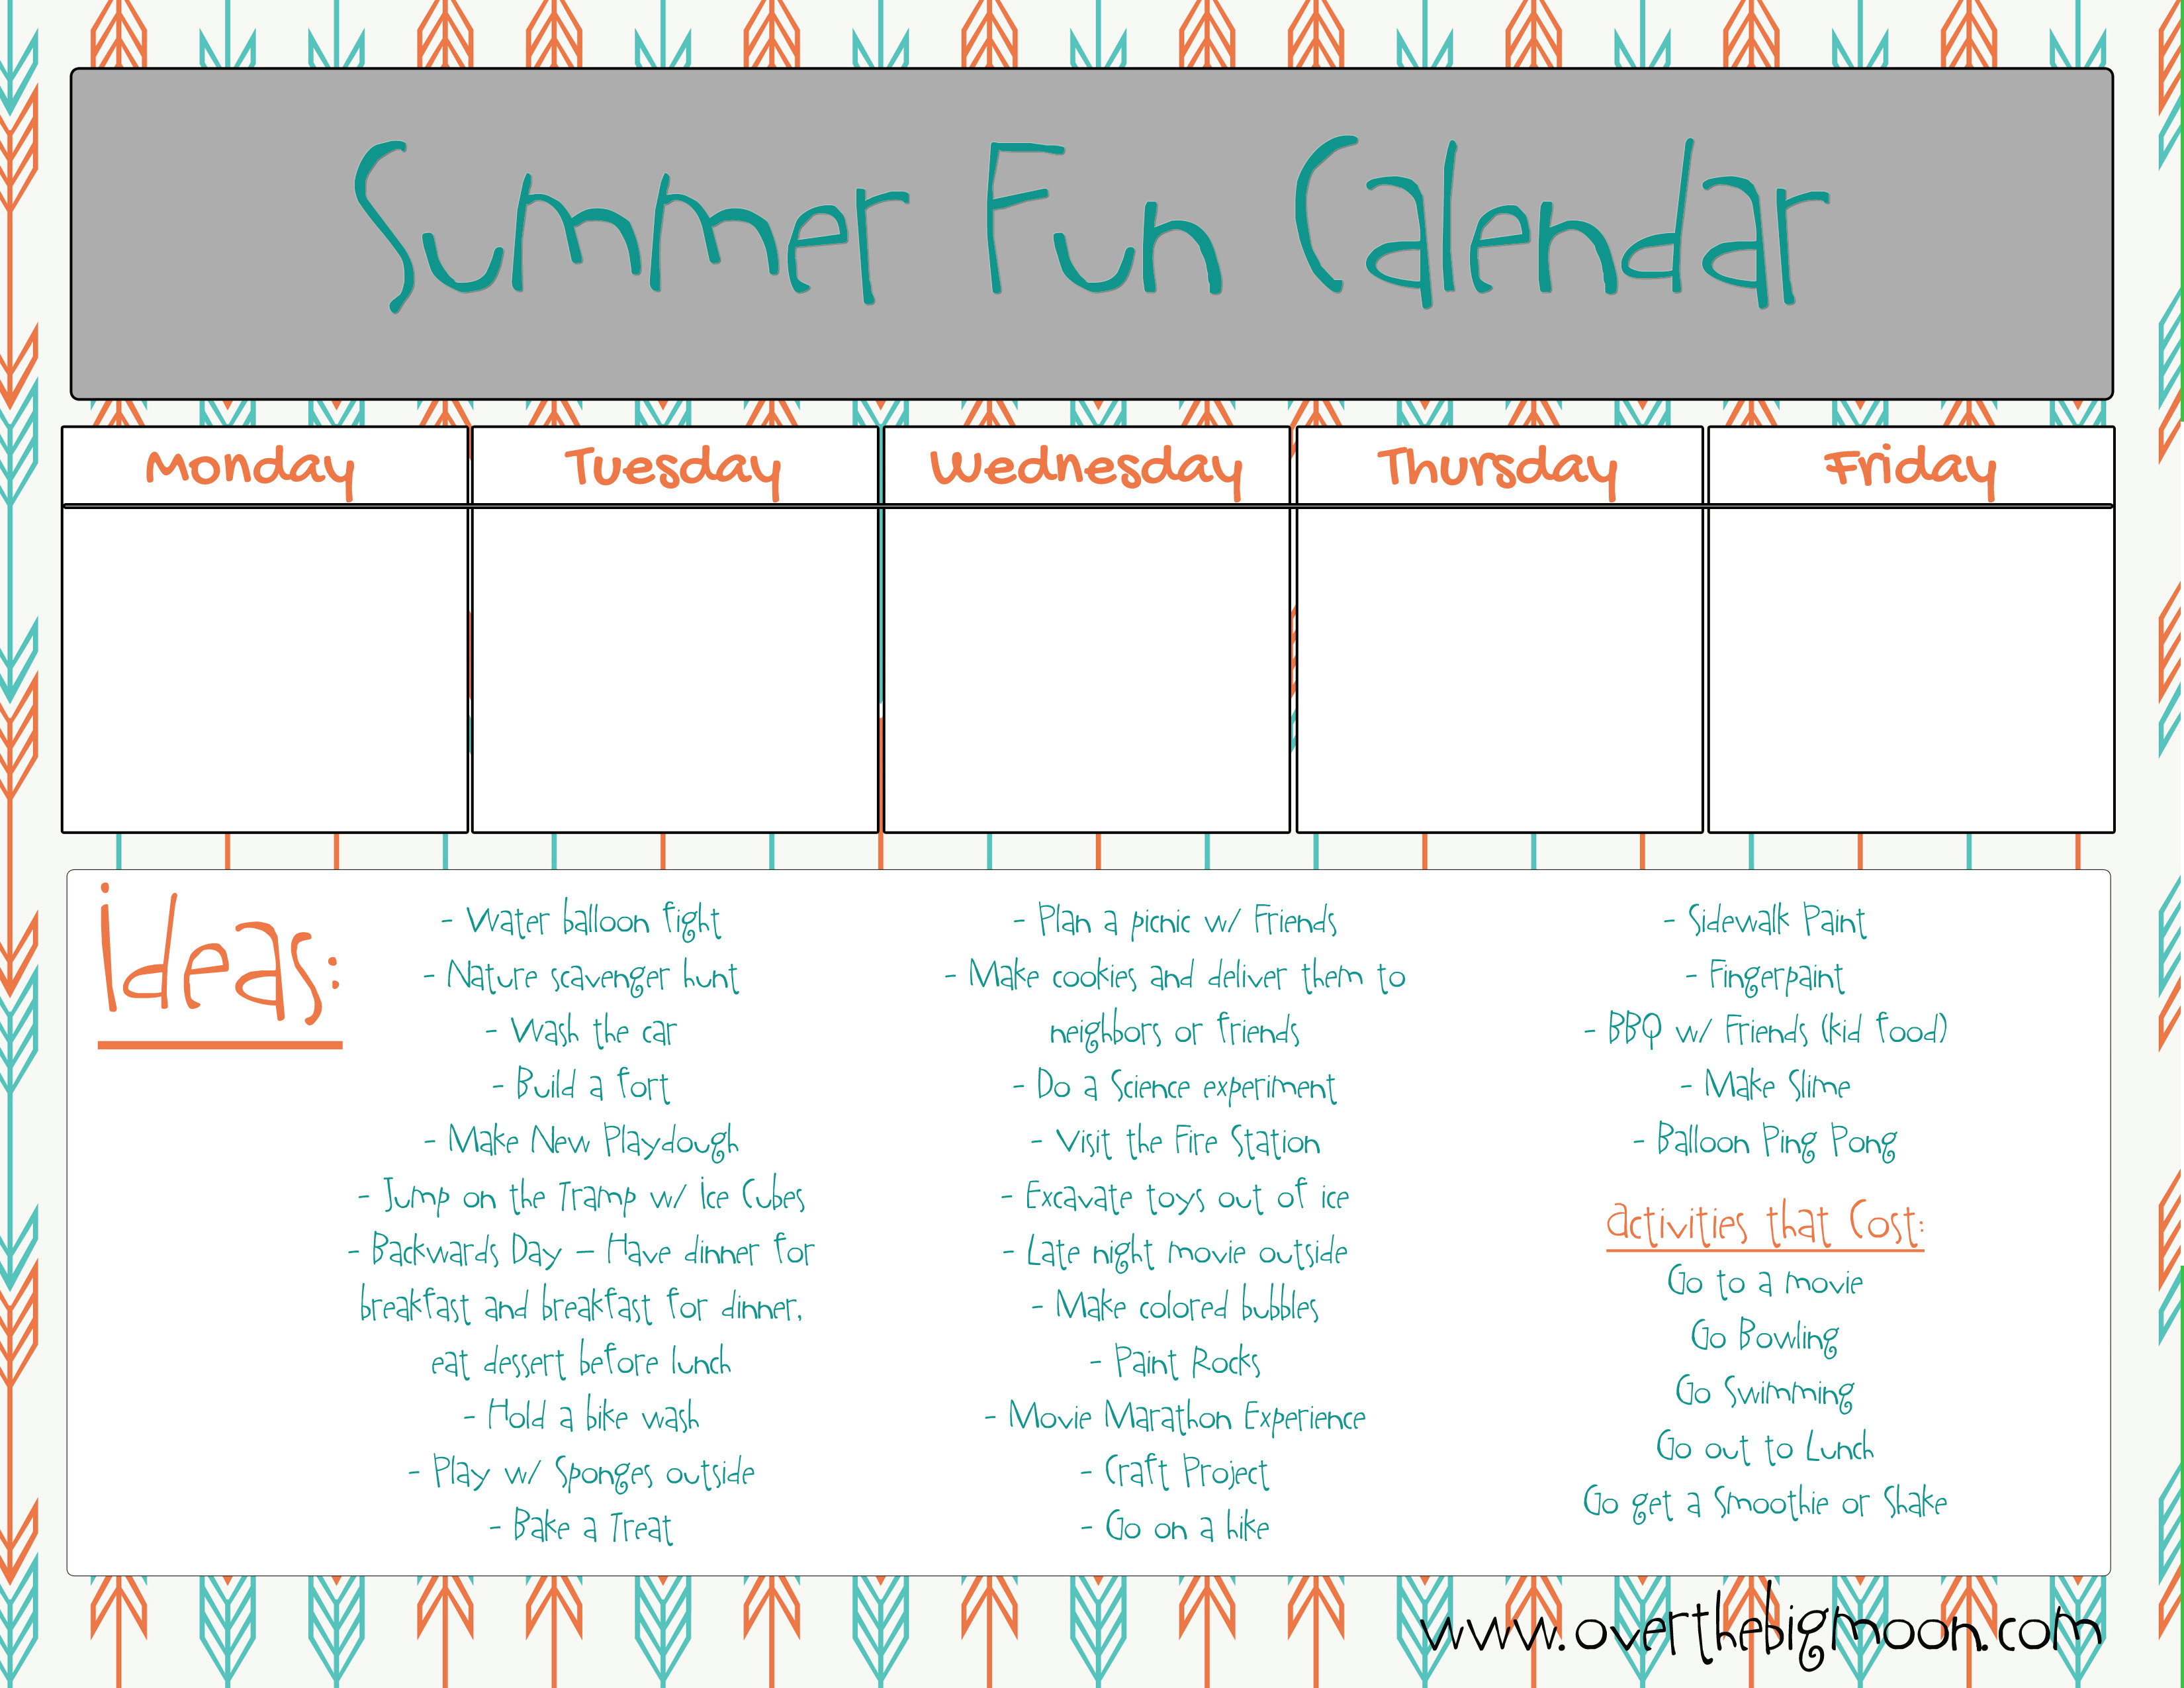 Summer Activity Printable intended for Summer Activity Calendar Template